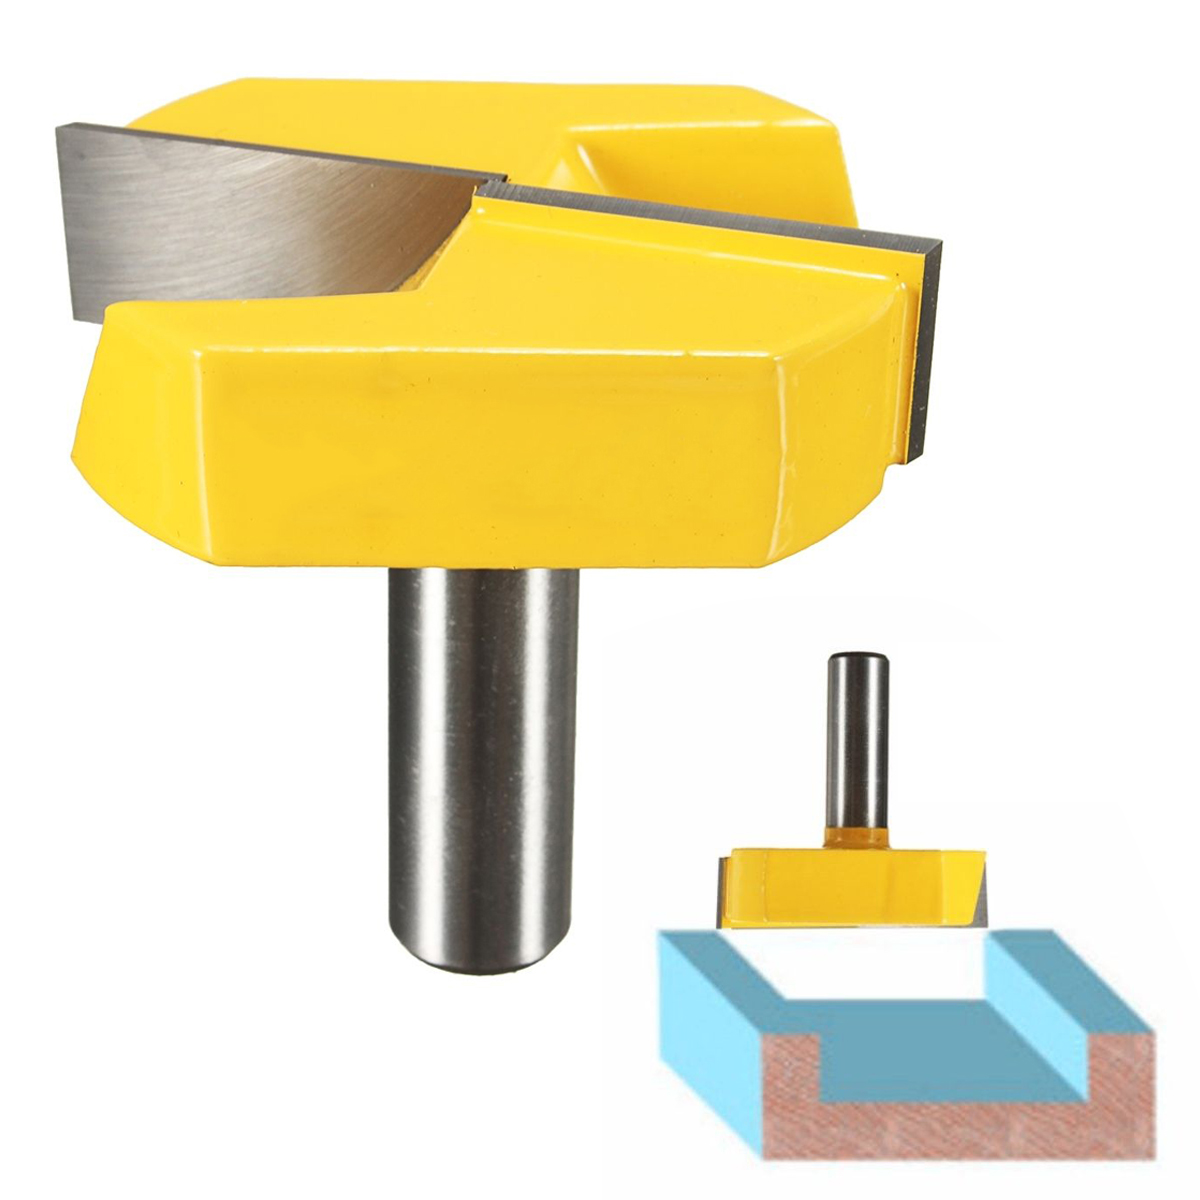 1/2 Shank 2-1/4 Diameter Bottom Cleaning Router Bit Mayitr High-precision Woodworking Milling Cutter Cutting Tools for MDF 1pc strong mayitr 1 2 shank 2 1 4 dia bottom cleaning router bit high grade carbide woodworking milling cutter mdf wood tool